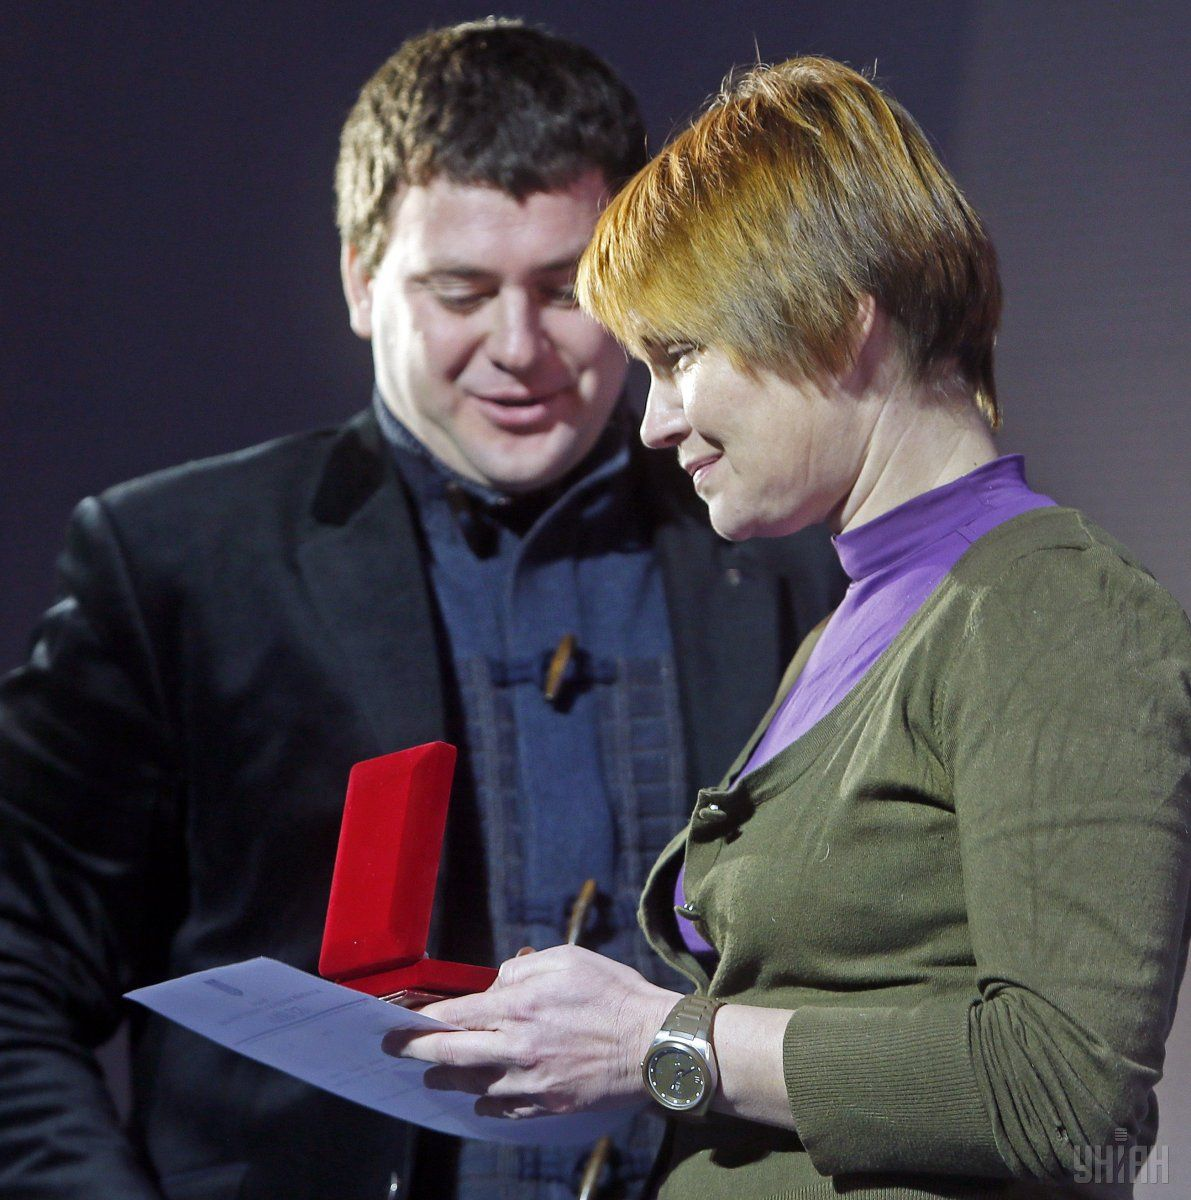 Lesia Lytvynova (Oleksandra Koval) received an award